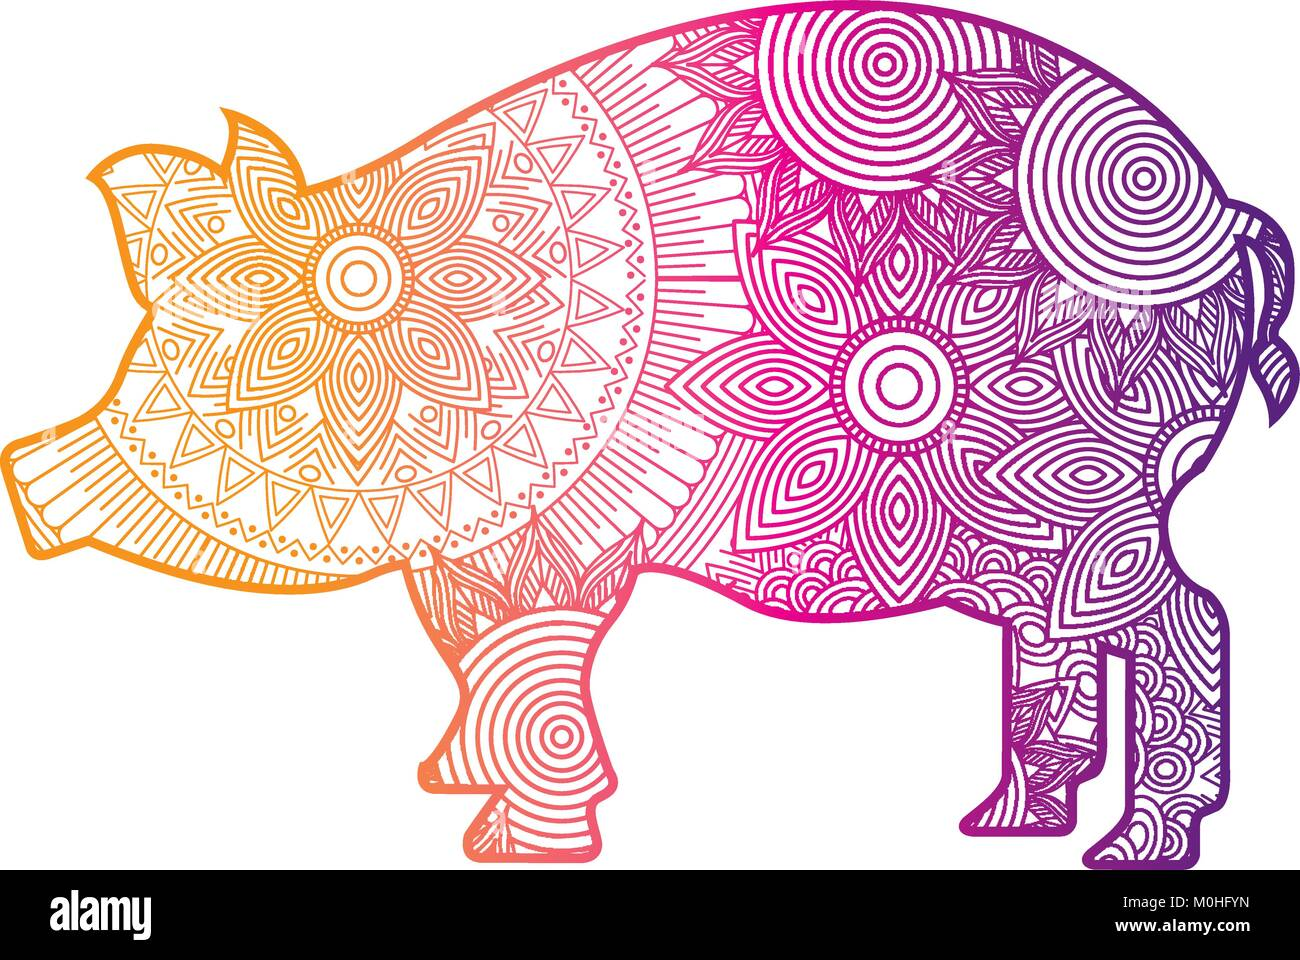 Pig Hand Drawn Vector Illustration Stockfotos & Pig Hand Drawn ...